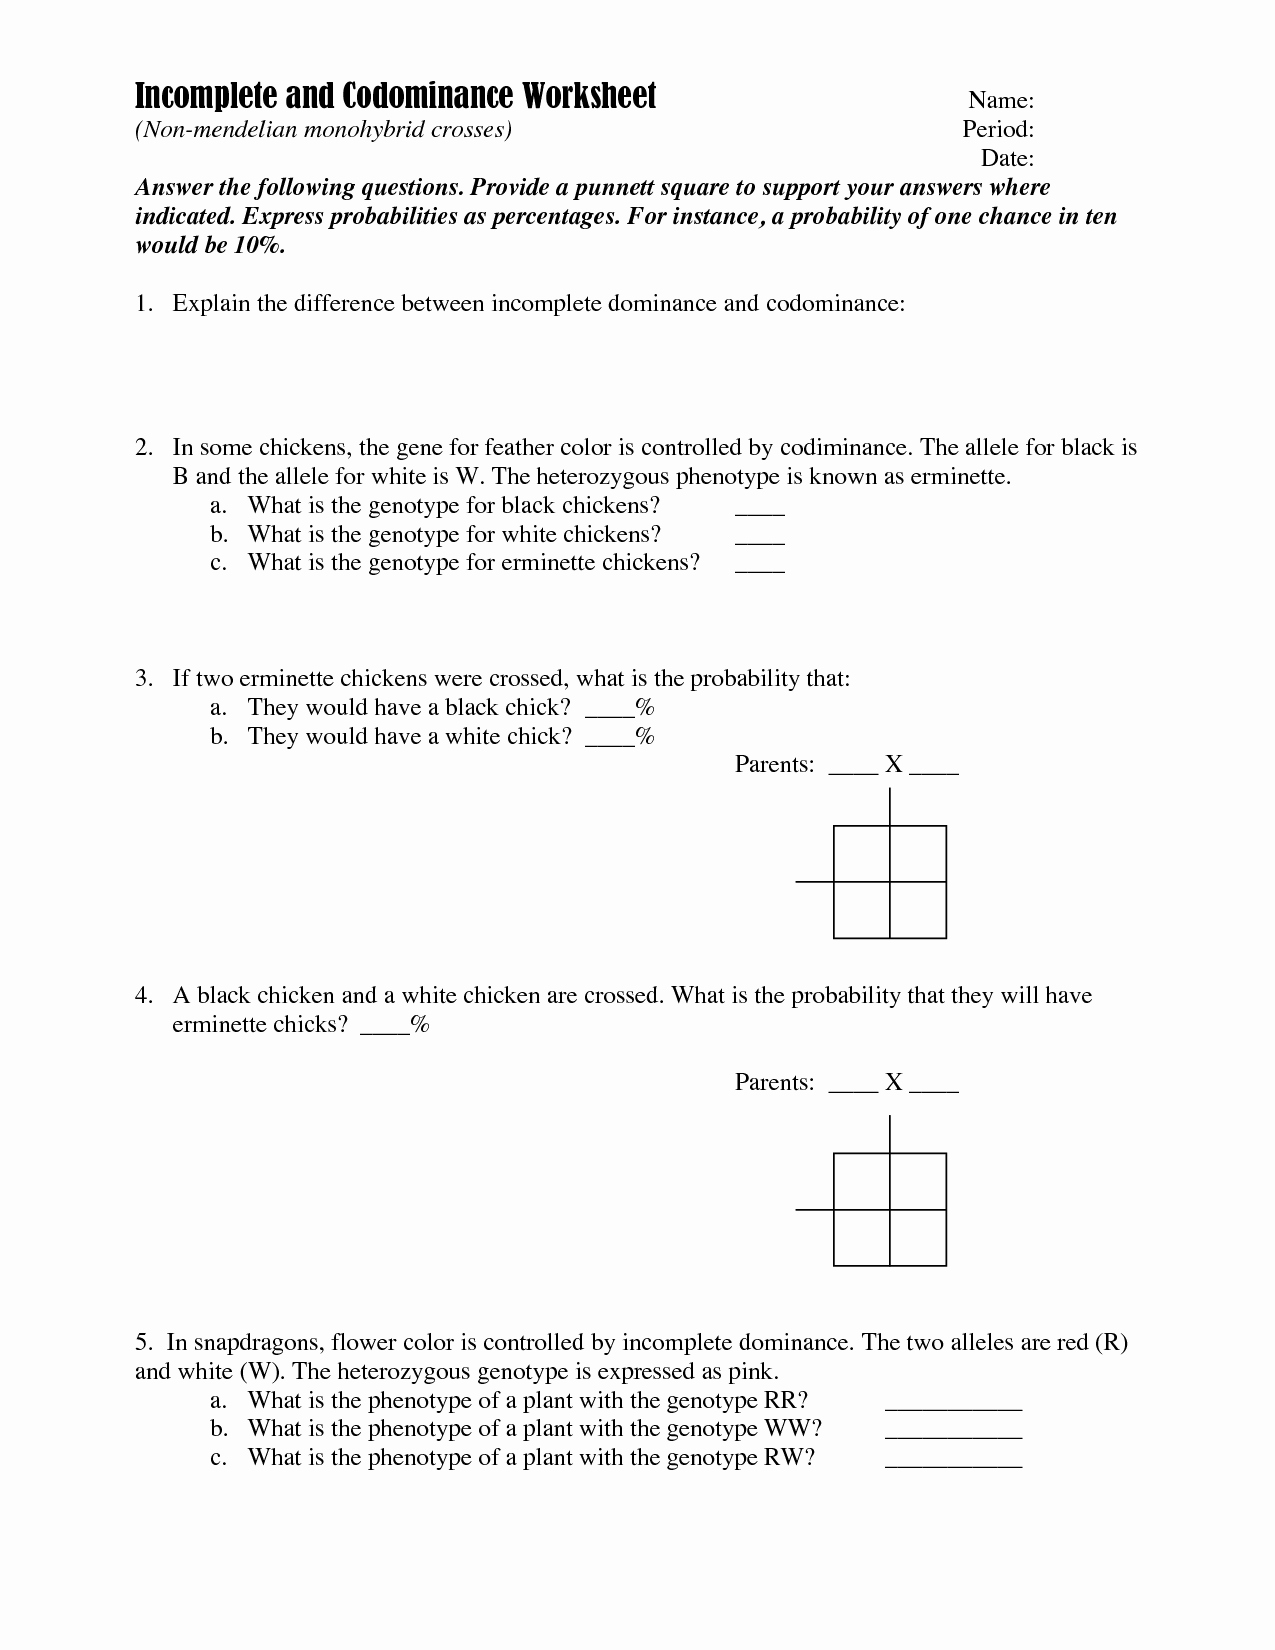 Monohybrid Crosses Worksheet Answers Best Of 14 Best Of Monohybrid Cross Worksheet Answer Key